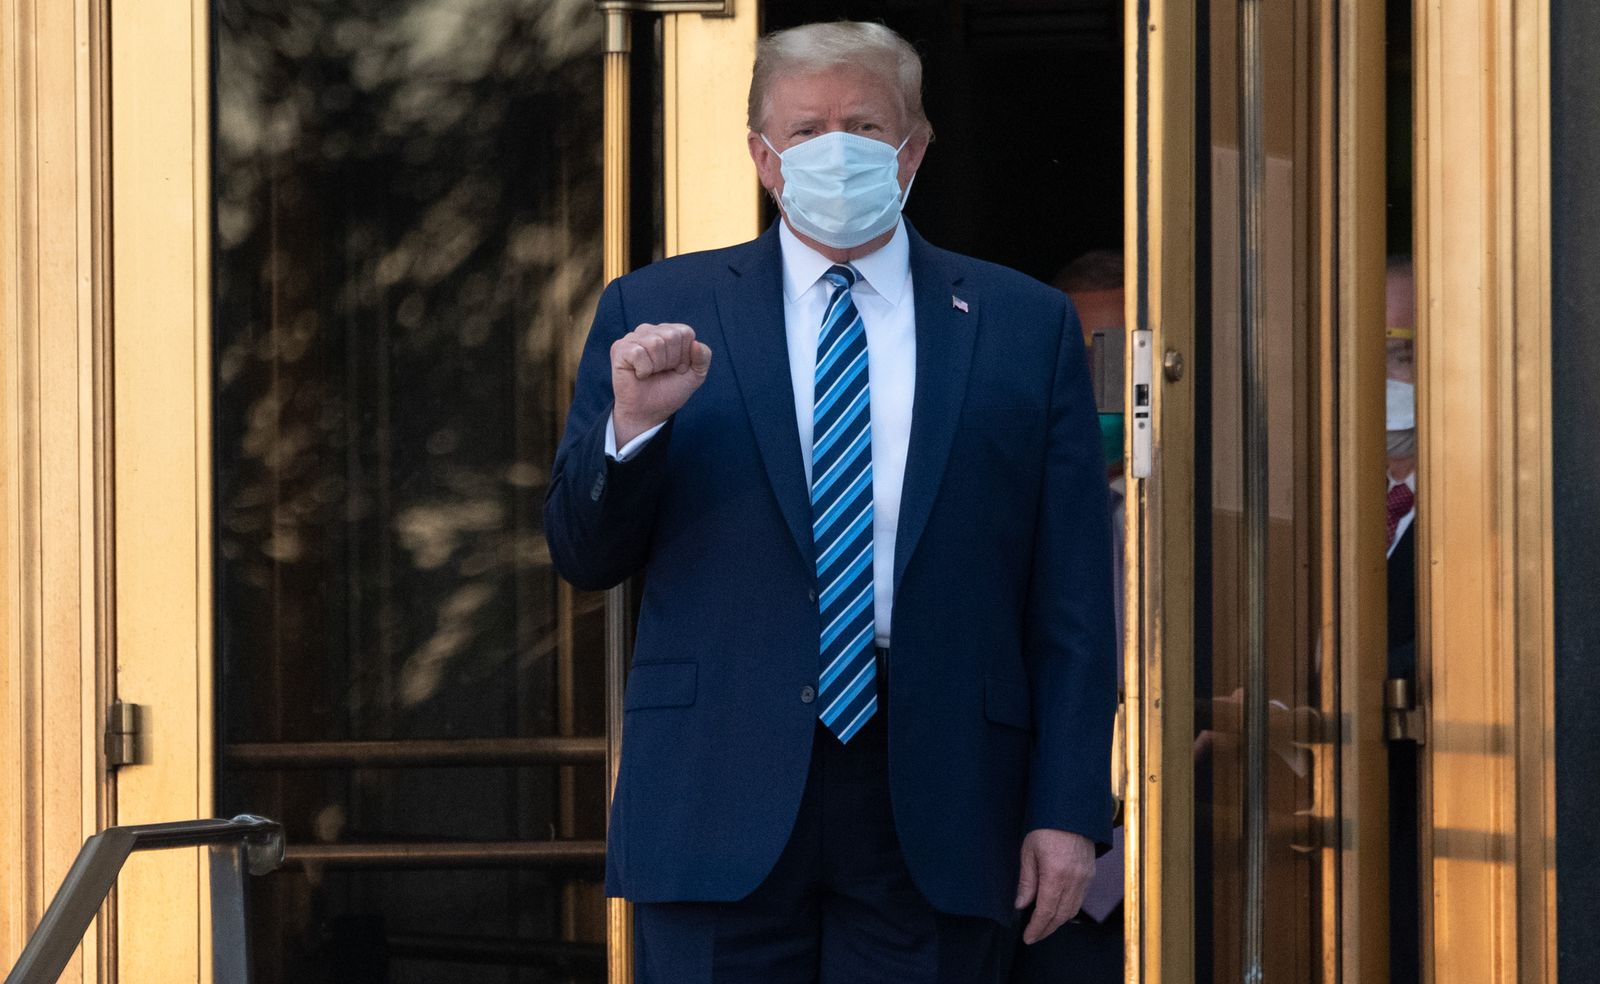 Trump treated in hospital after positive test for coronavirus